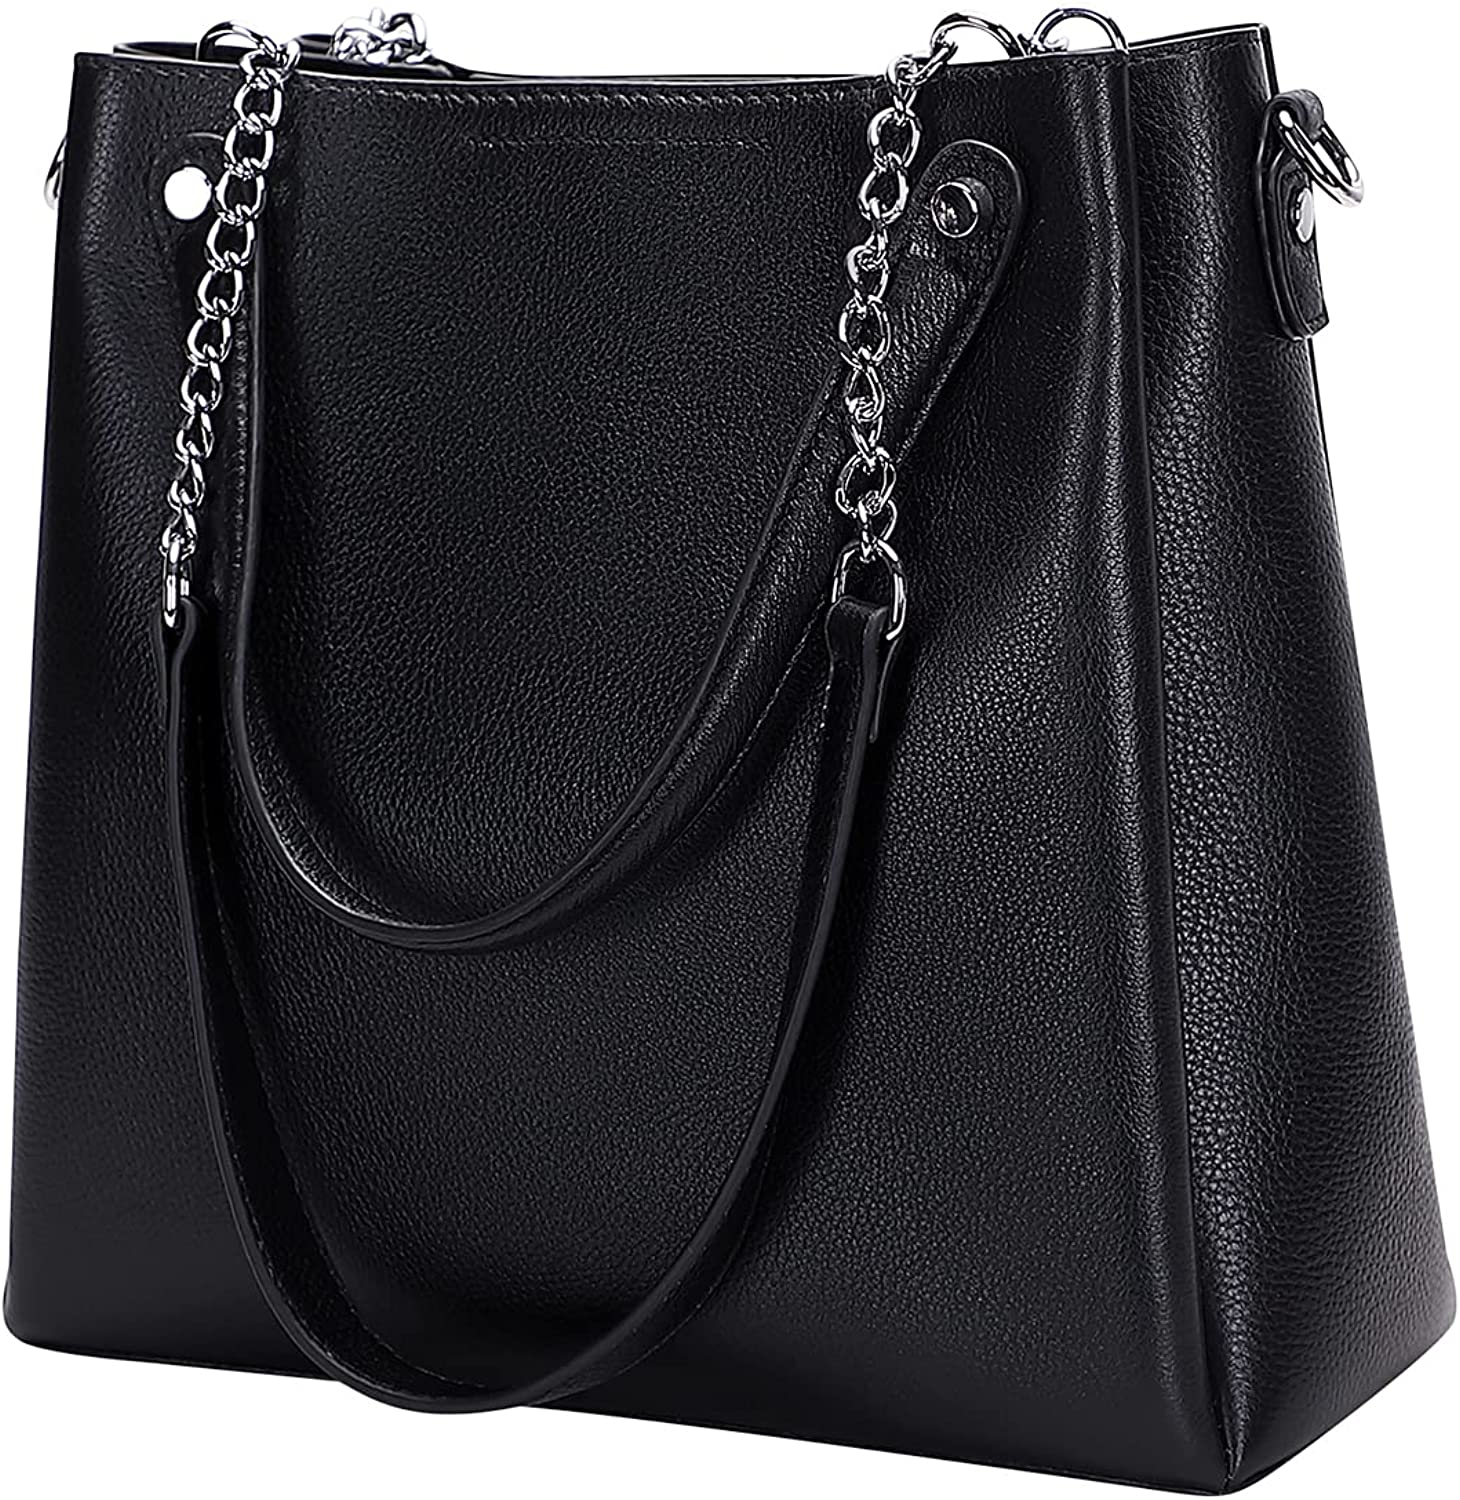 OVER Max 65% OFF EARTH Genuine Leather Purses Women lowest price for Shoulde Handbags and